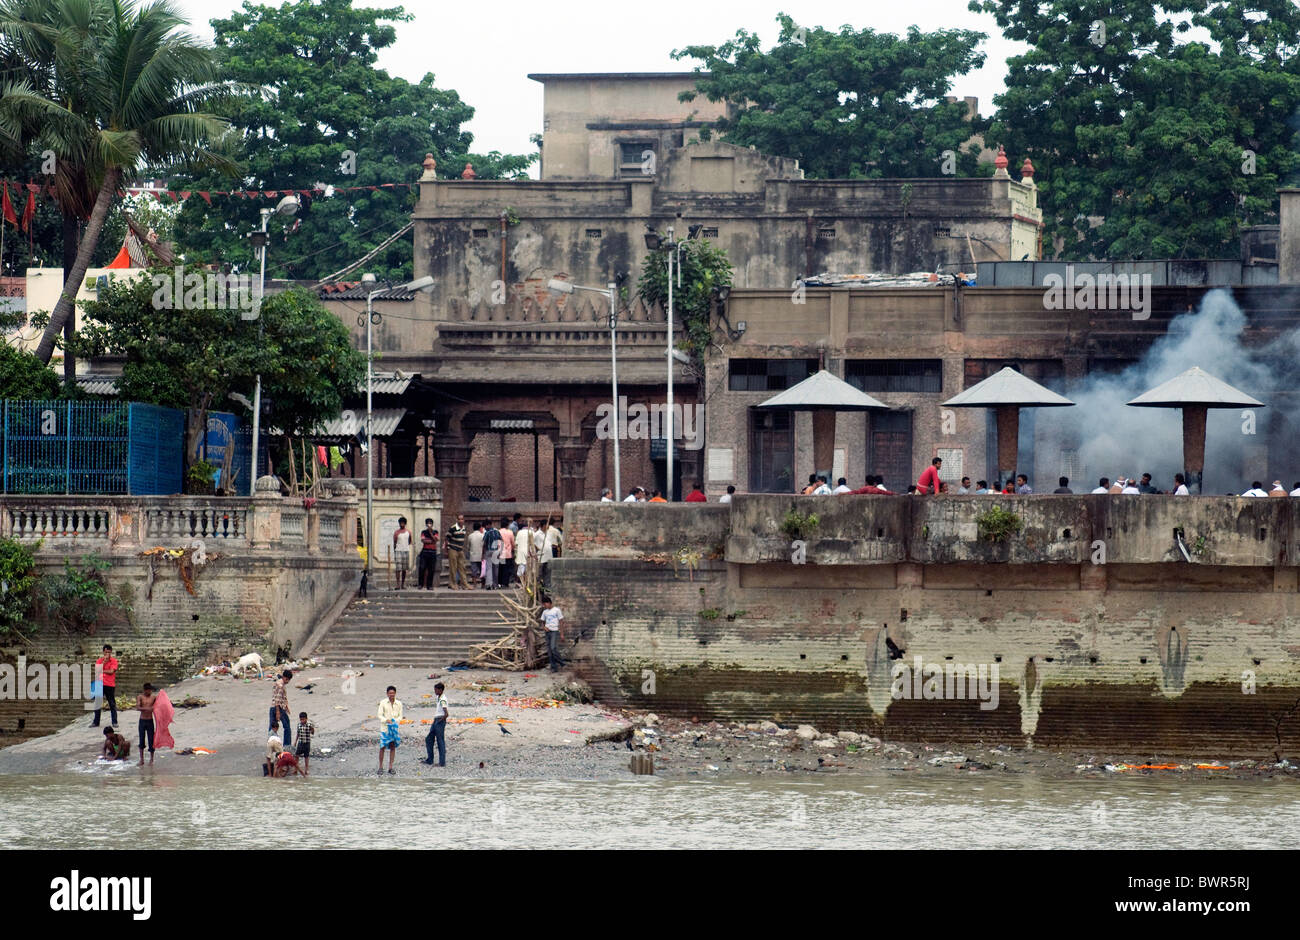 Rising smoke shows cremations are taking place at ghats on the Kolkata shore beside the Hooghly river - Stock Image